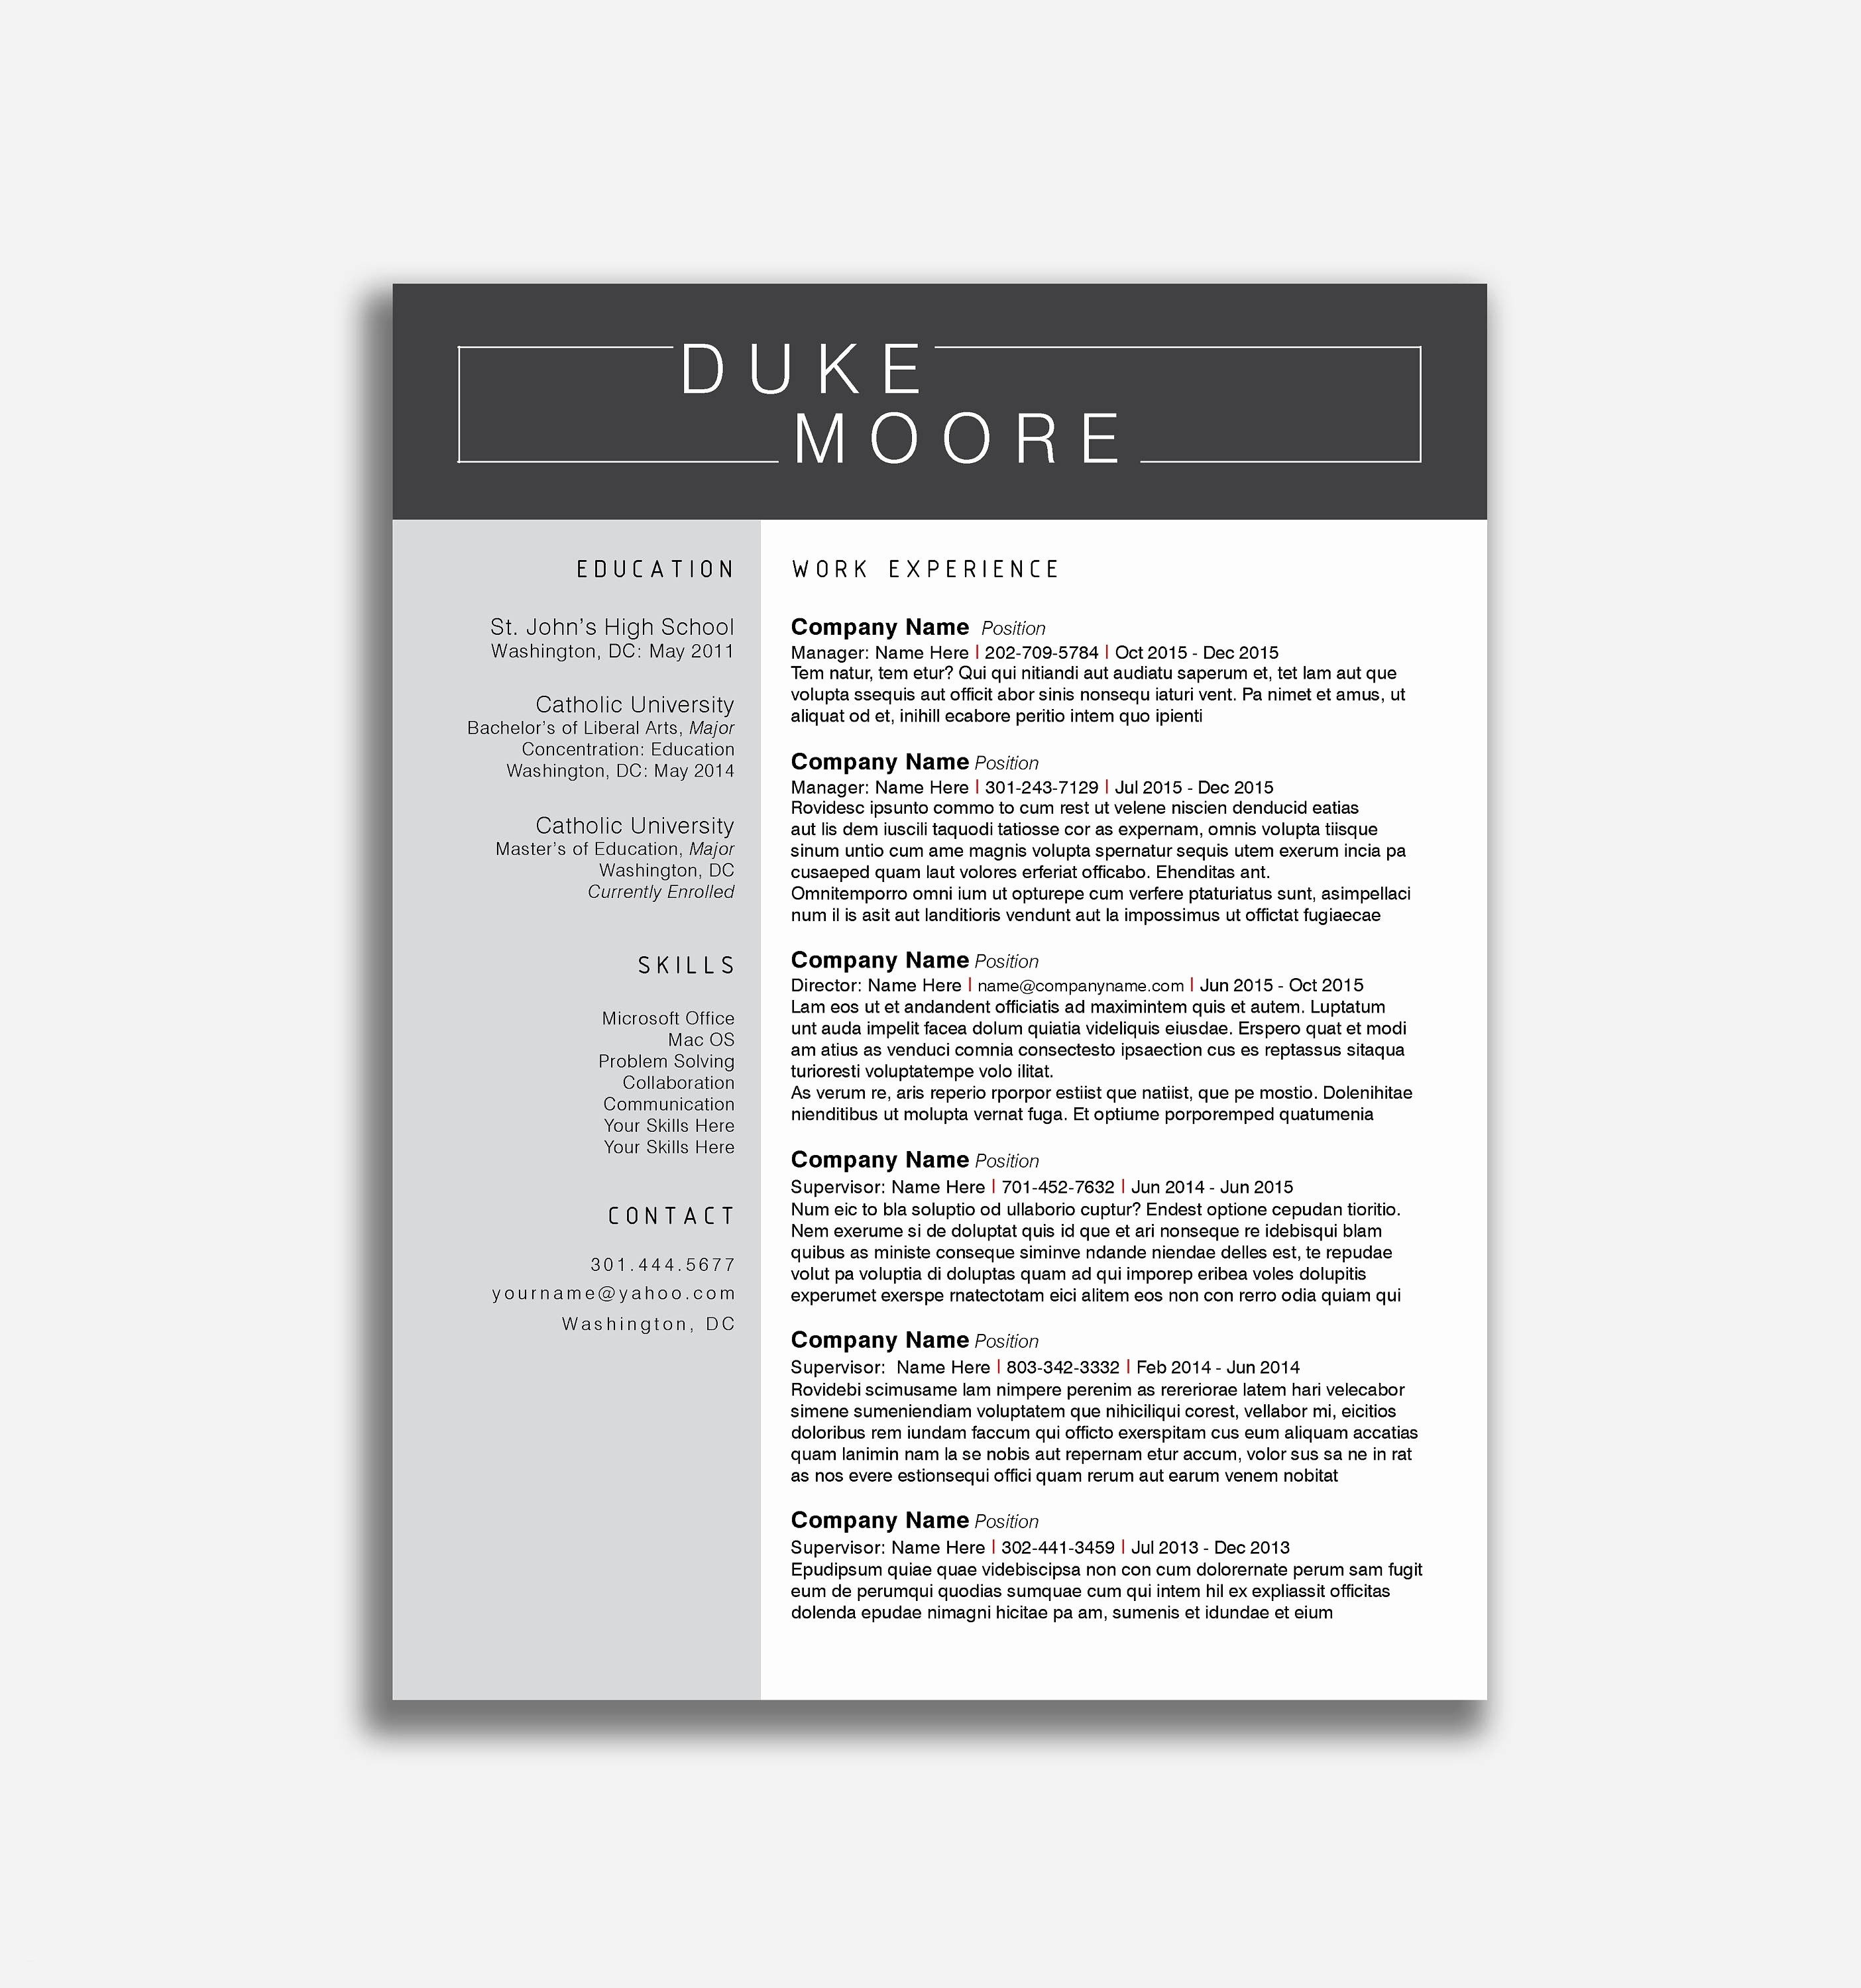 Interior Design Resume Template - Interior Design Resume Template Valid Free Modern Resume Templates